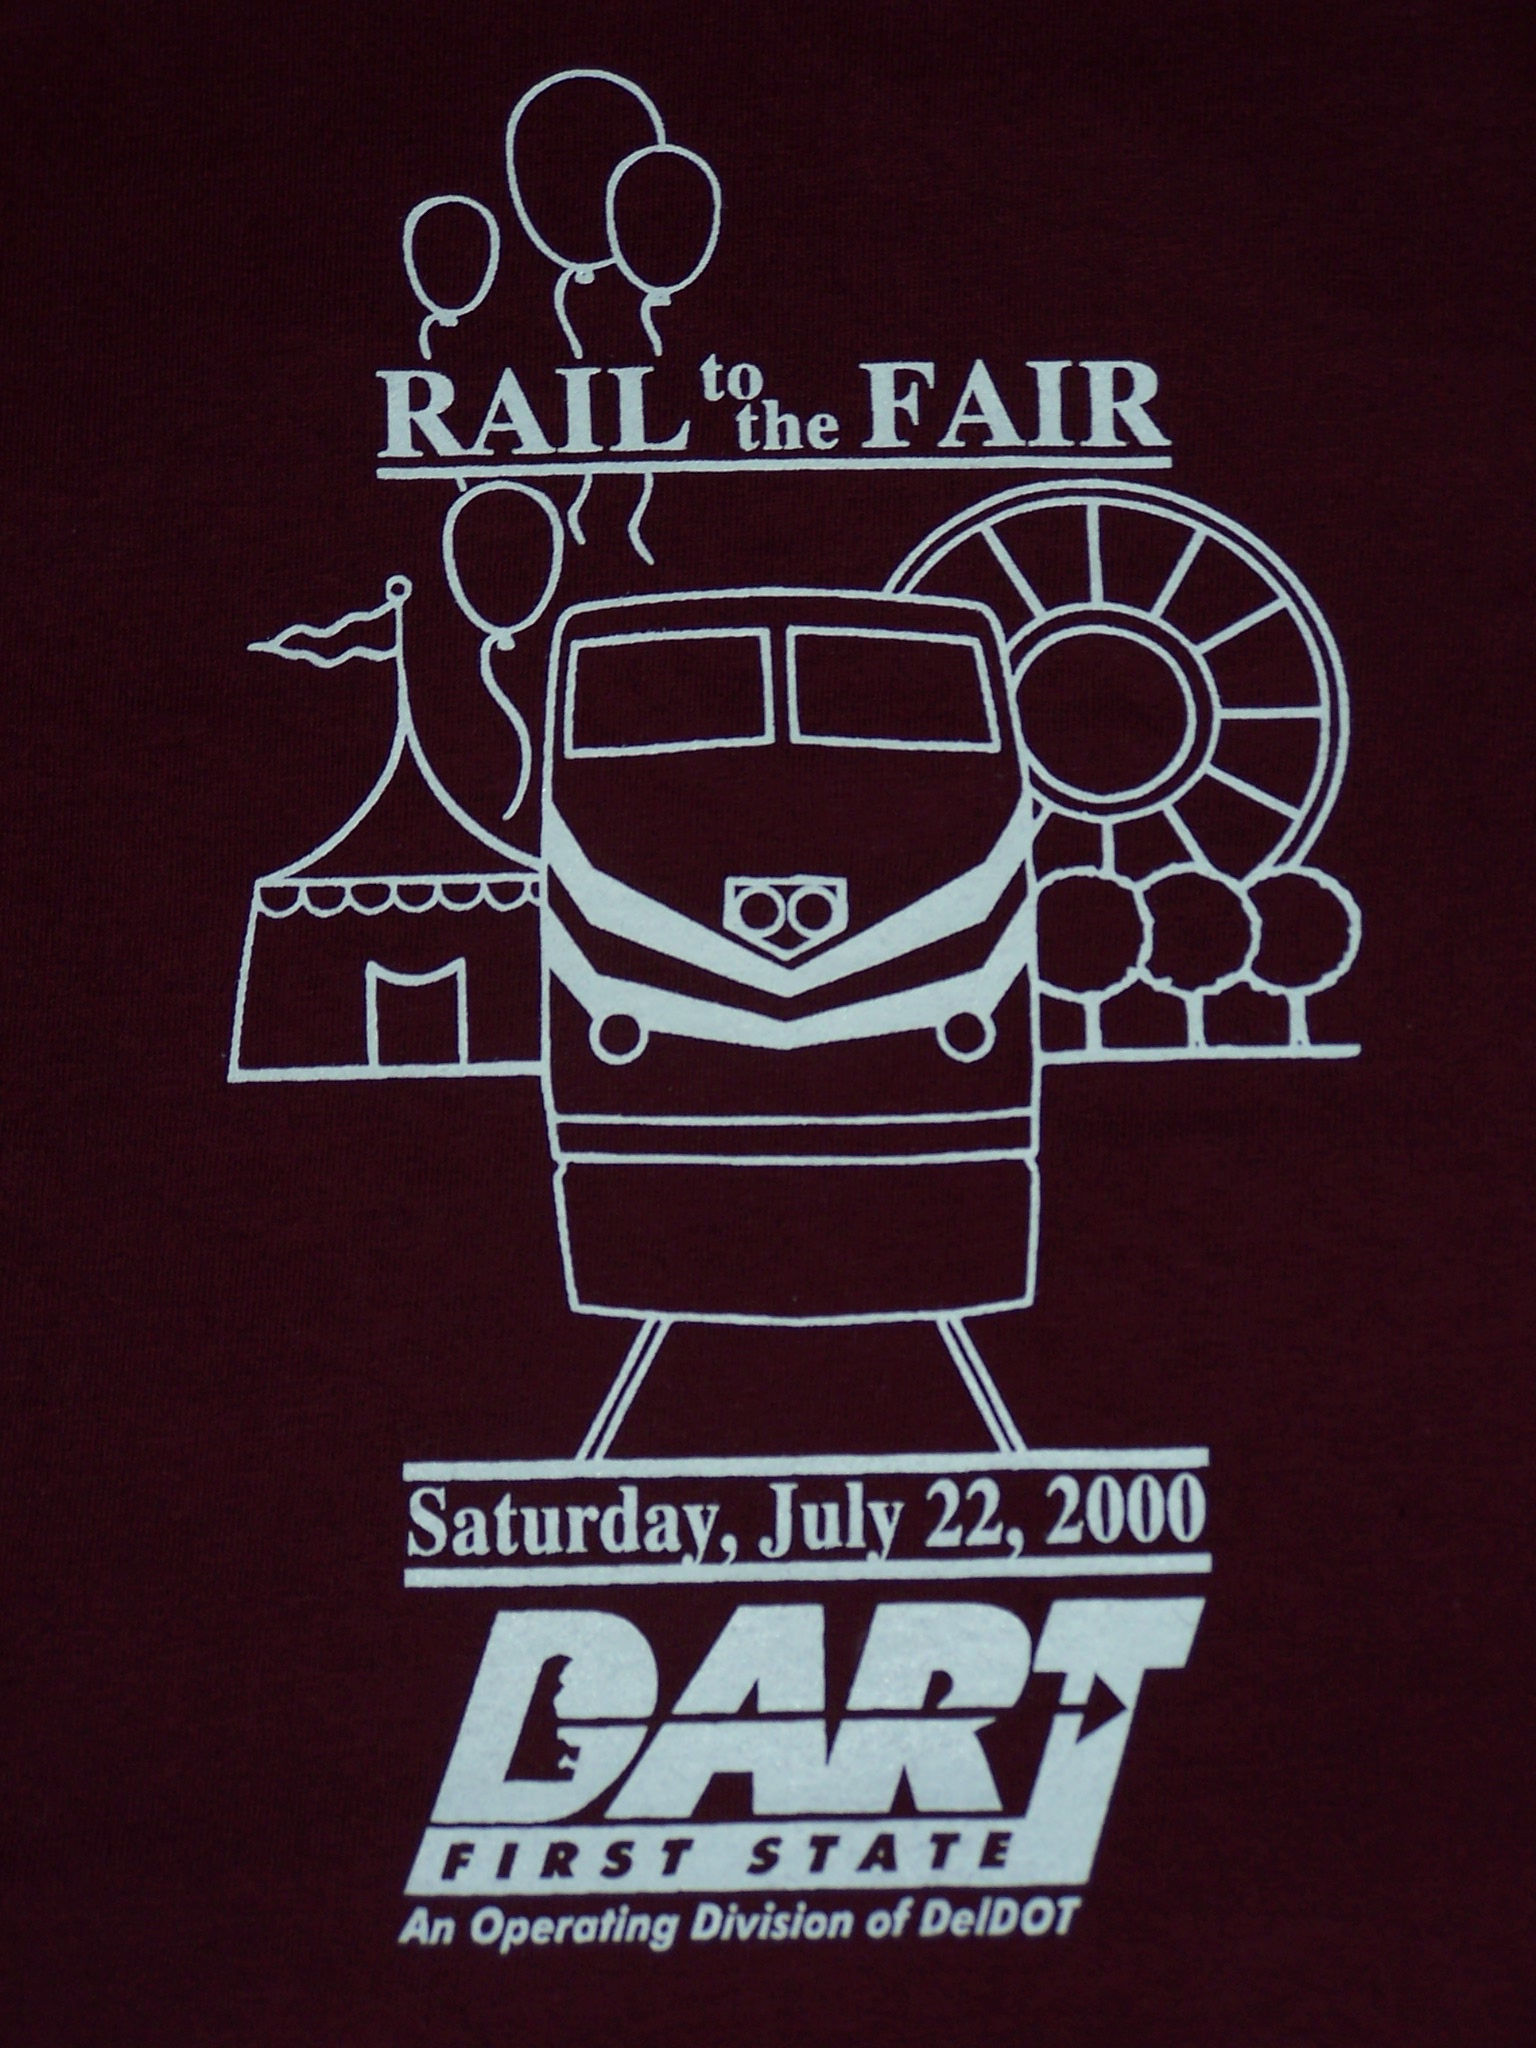 2000 Rail to the Fair tee shirt